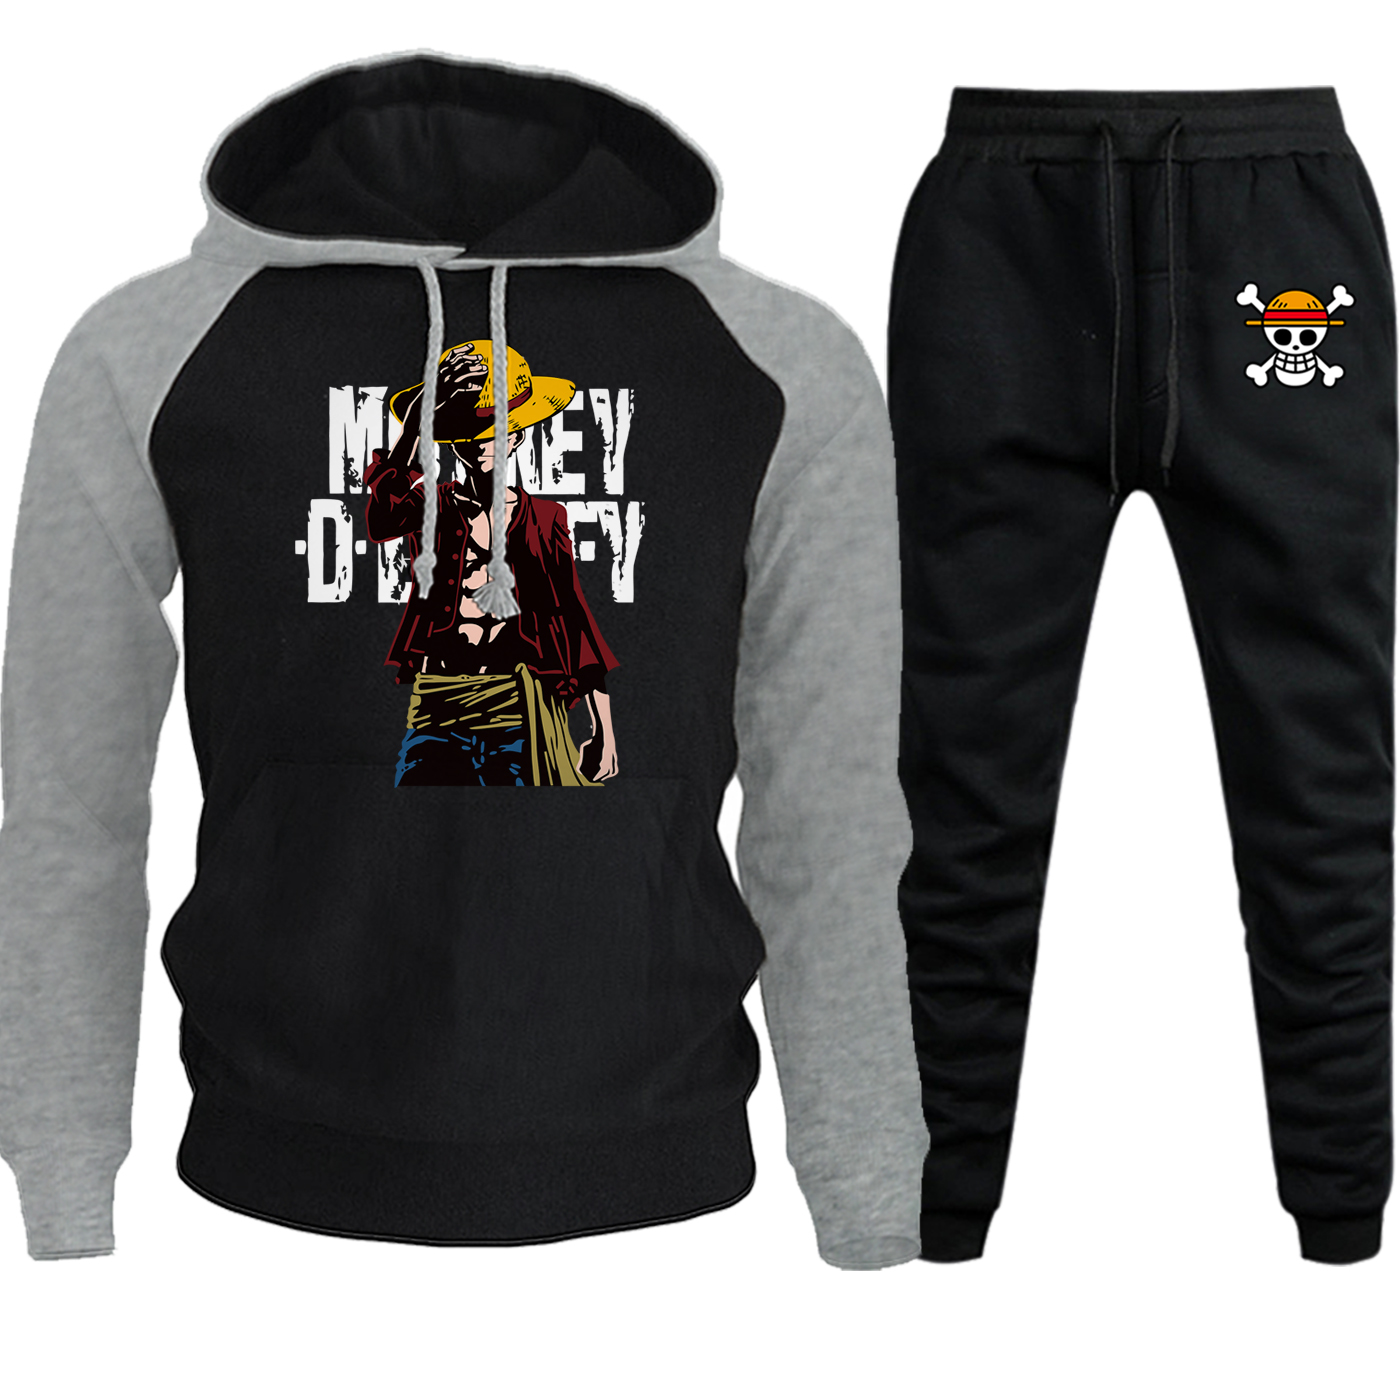 One Piece Streetwear Mens Hooded Raglan Autumn Winter2019 New Caartoon Casual Pullover Suit Fleece Hoodie+Pants 2 Piece Set